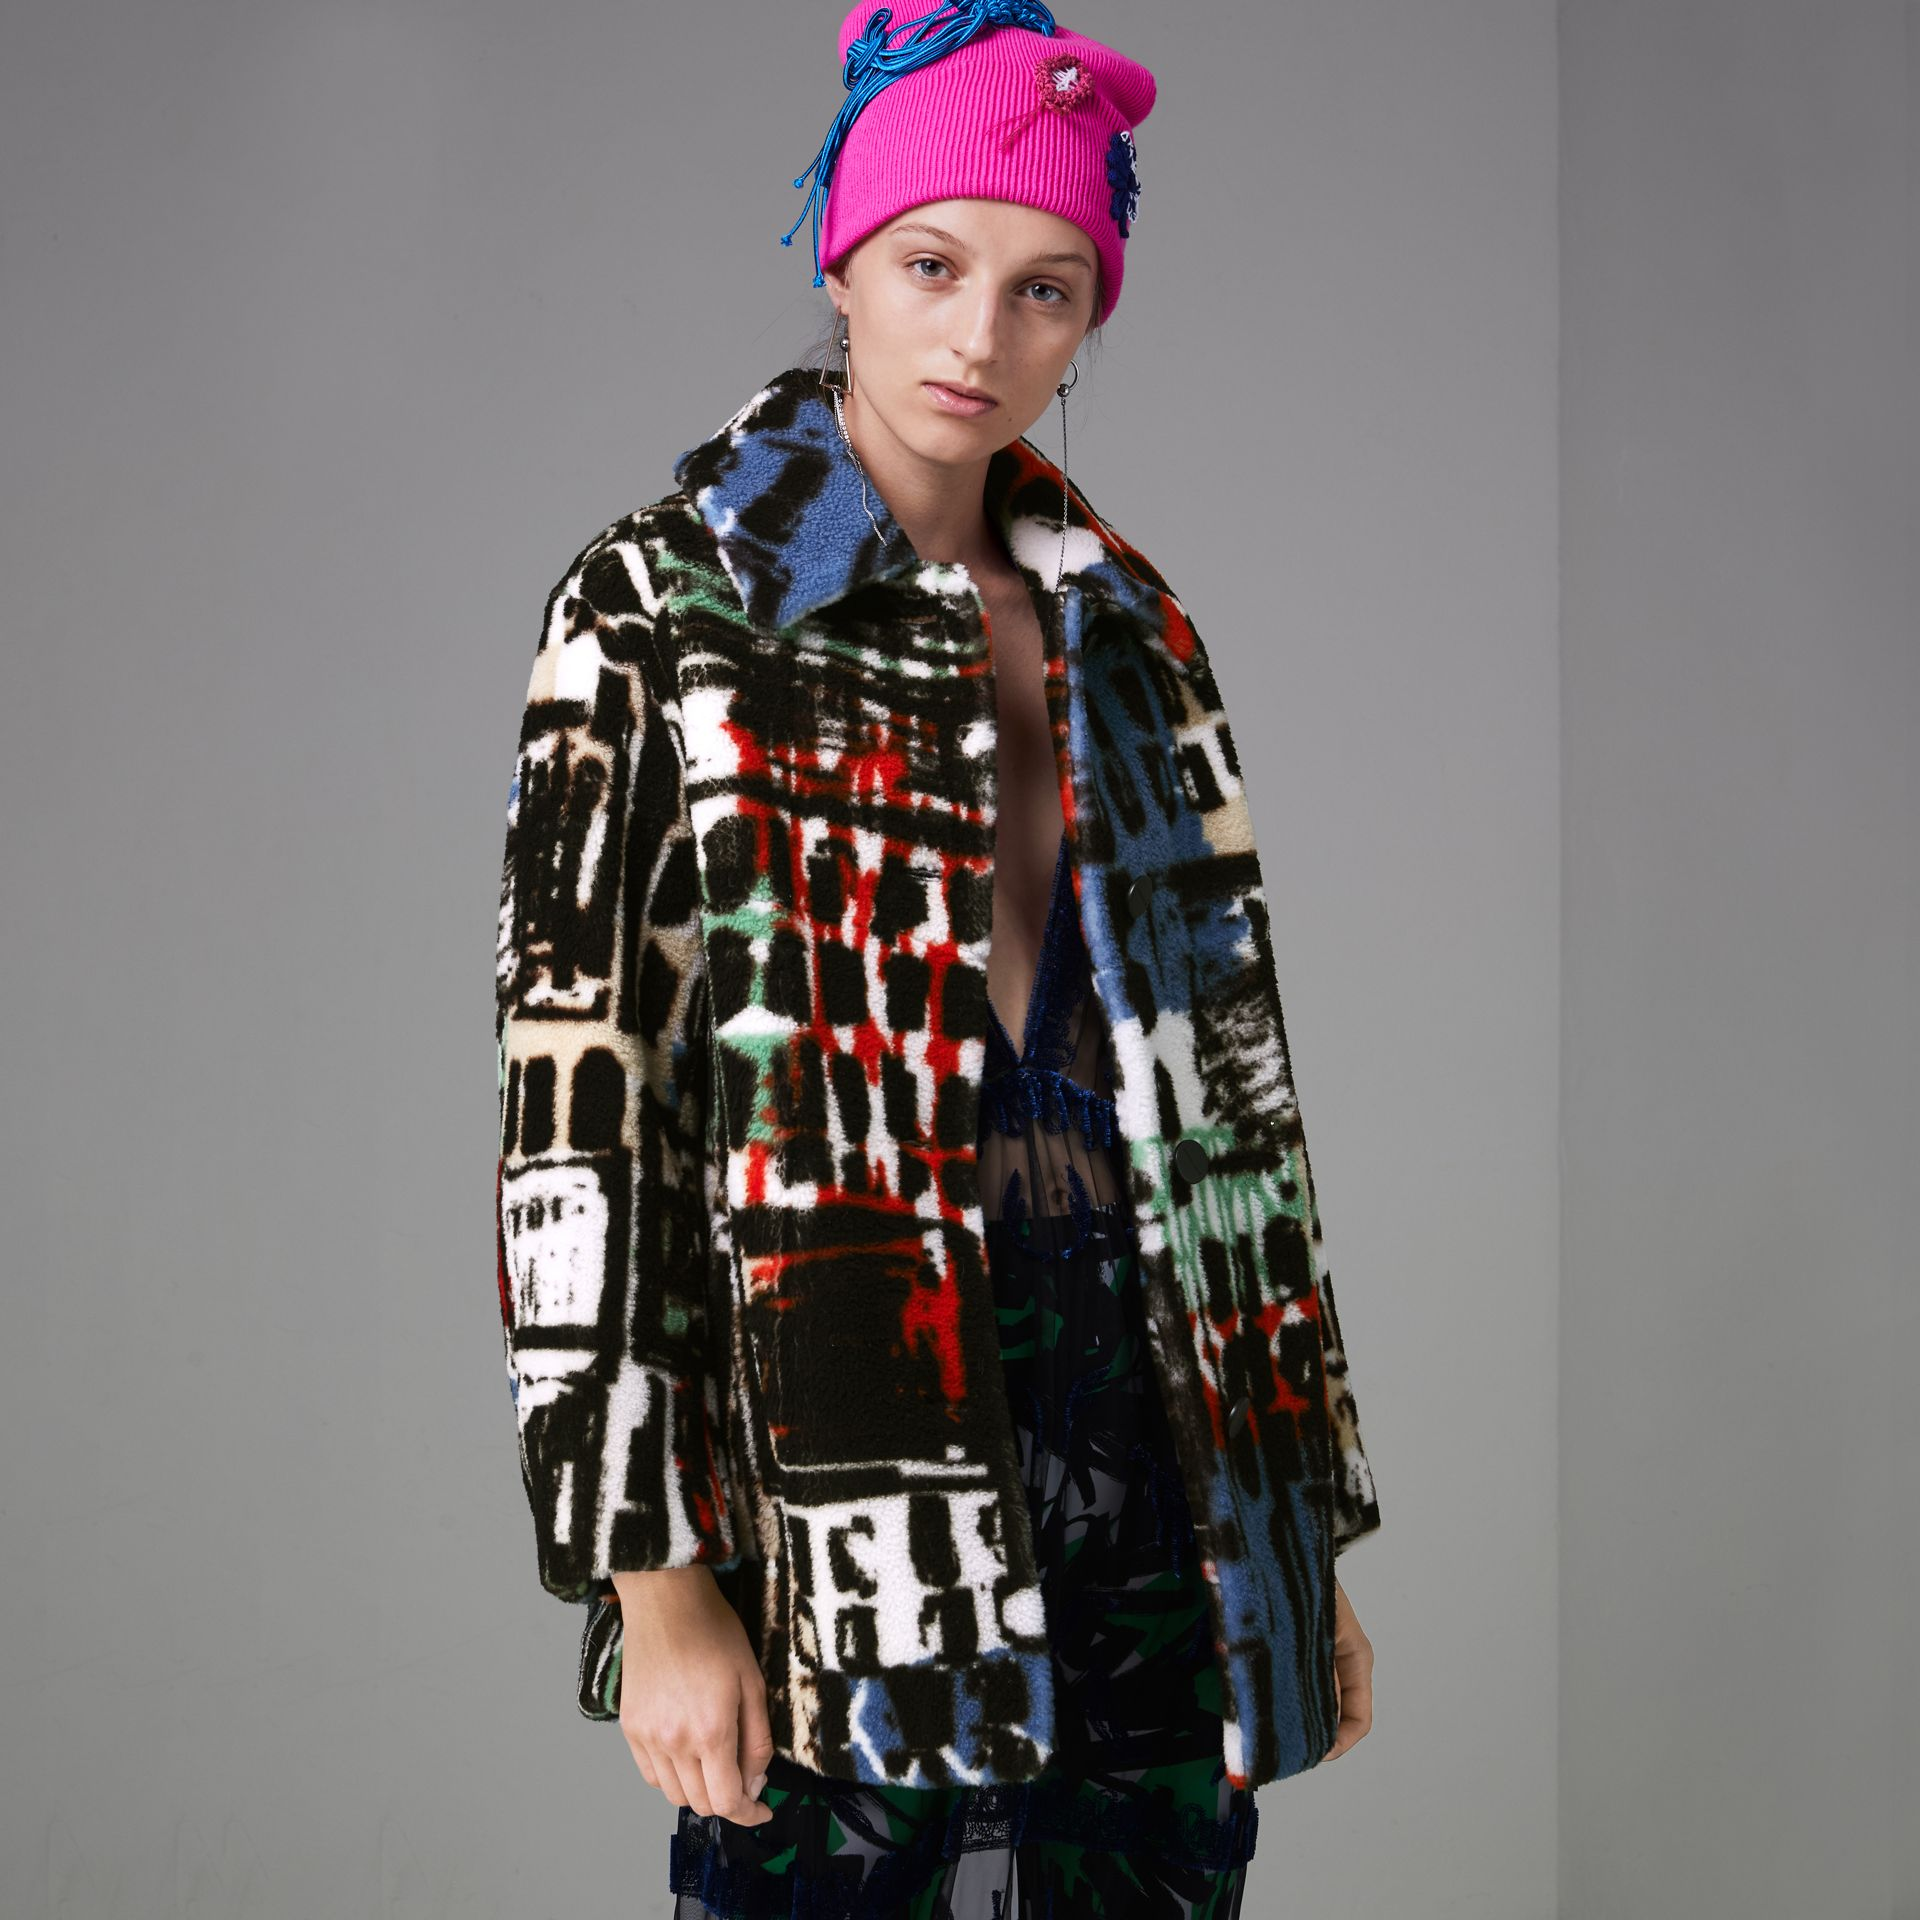 Graffiti Print Shearling Oversized Jacket in Steel Blue - Women | Burberry United States - gallery image 4